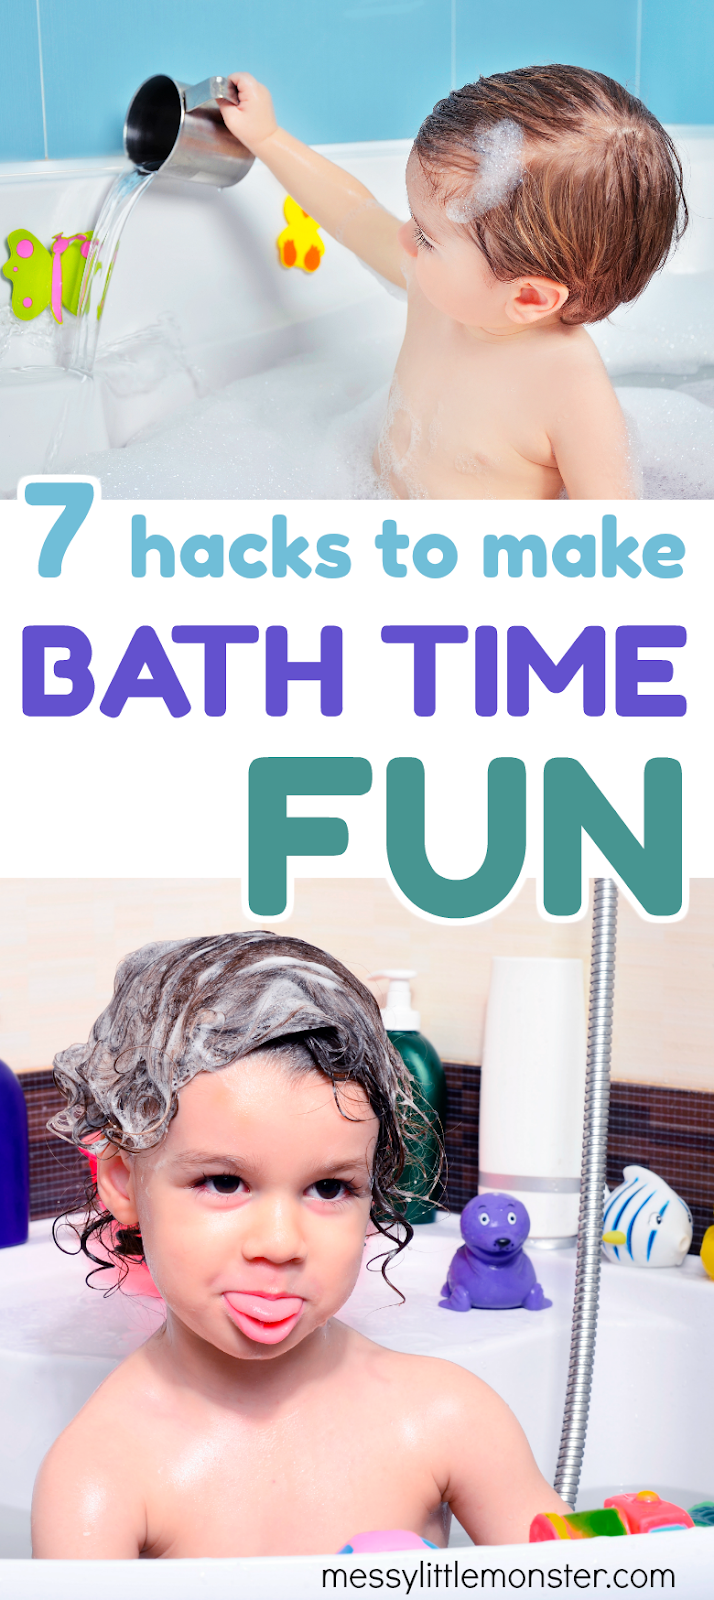 7 Hacks to Make Bath Time Fun for Toddlers